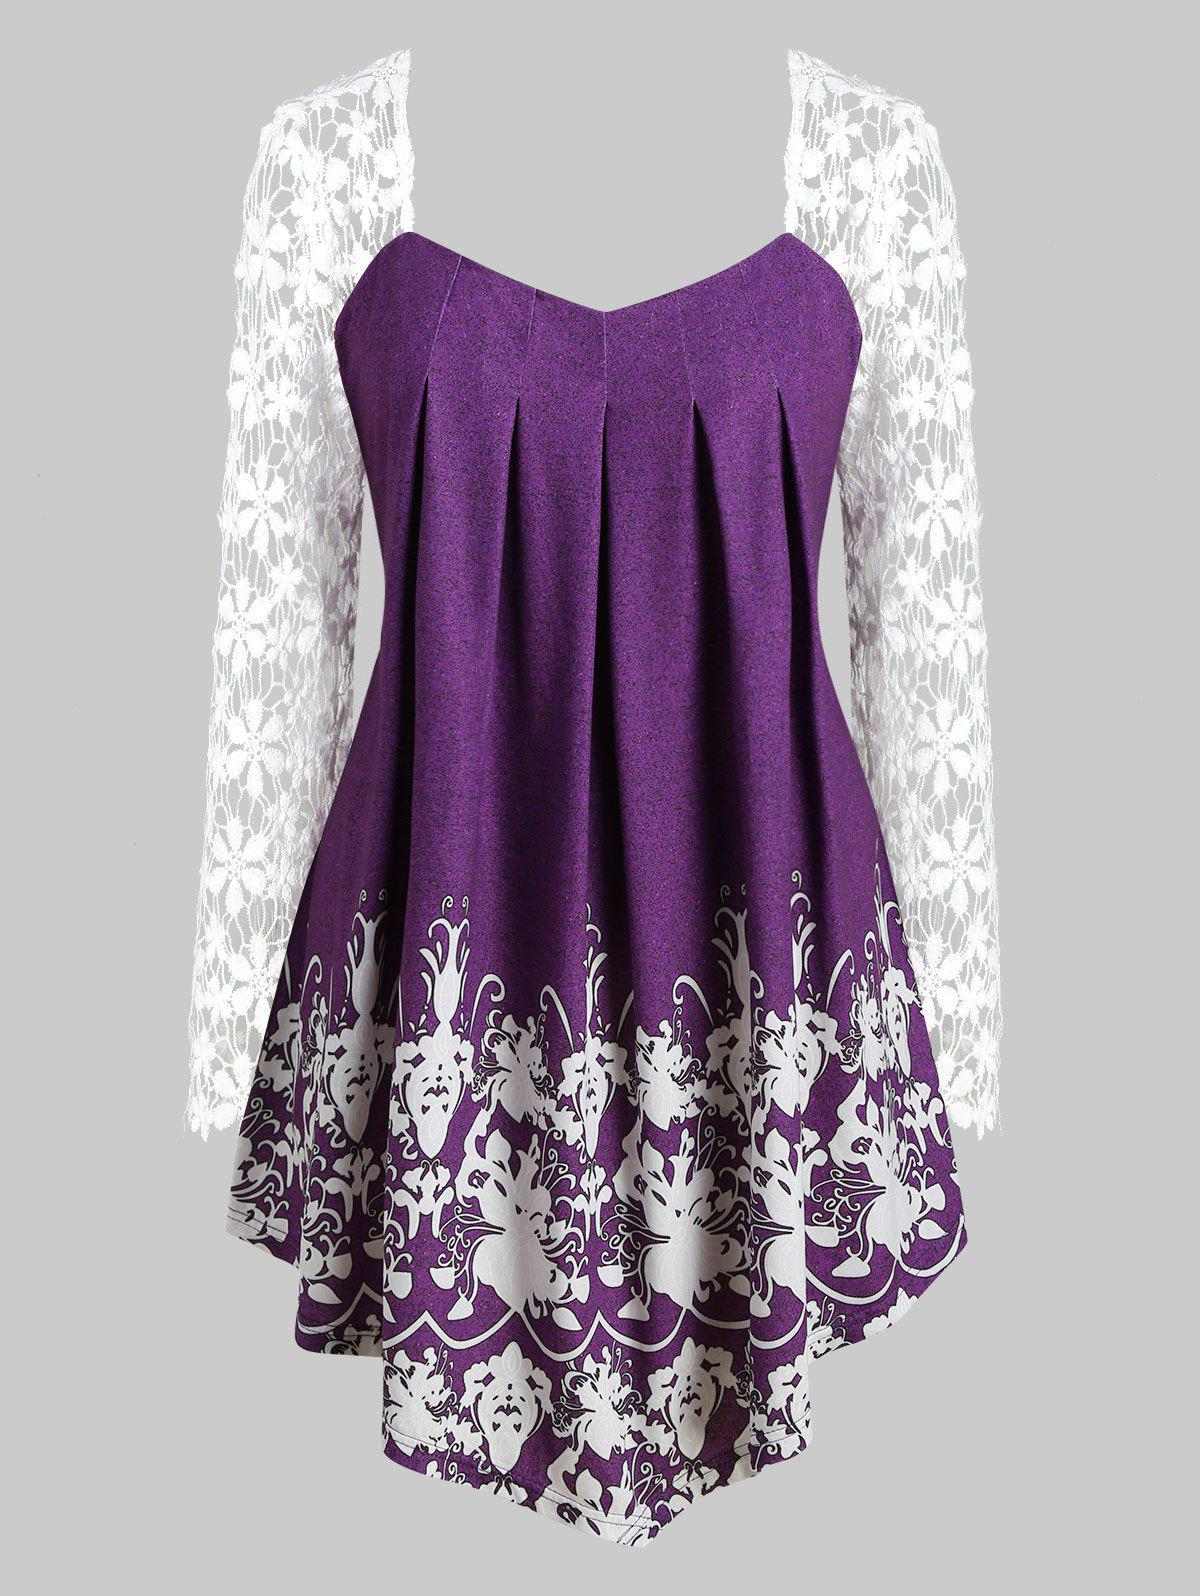 Printed Lace Sleeve Curved Hem Plus Size Top - PURPLE L